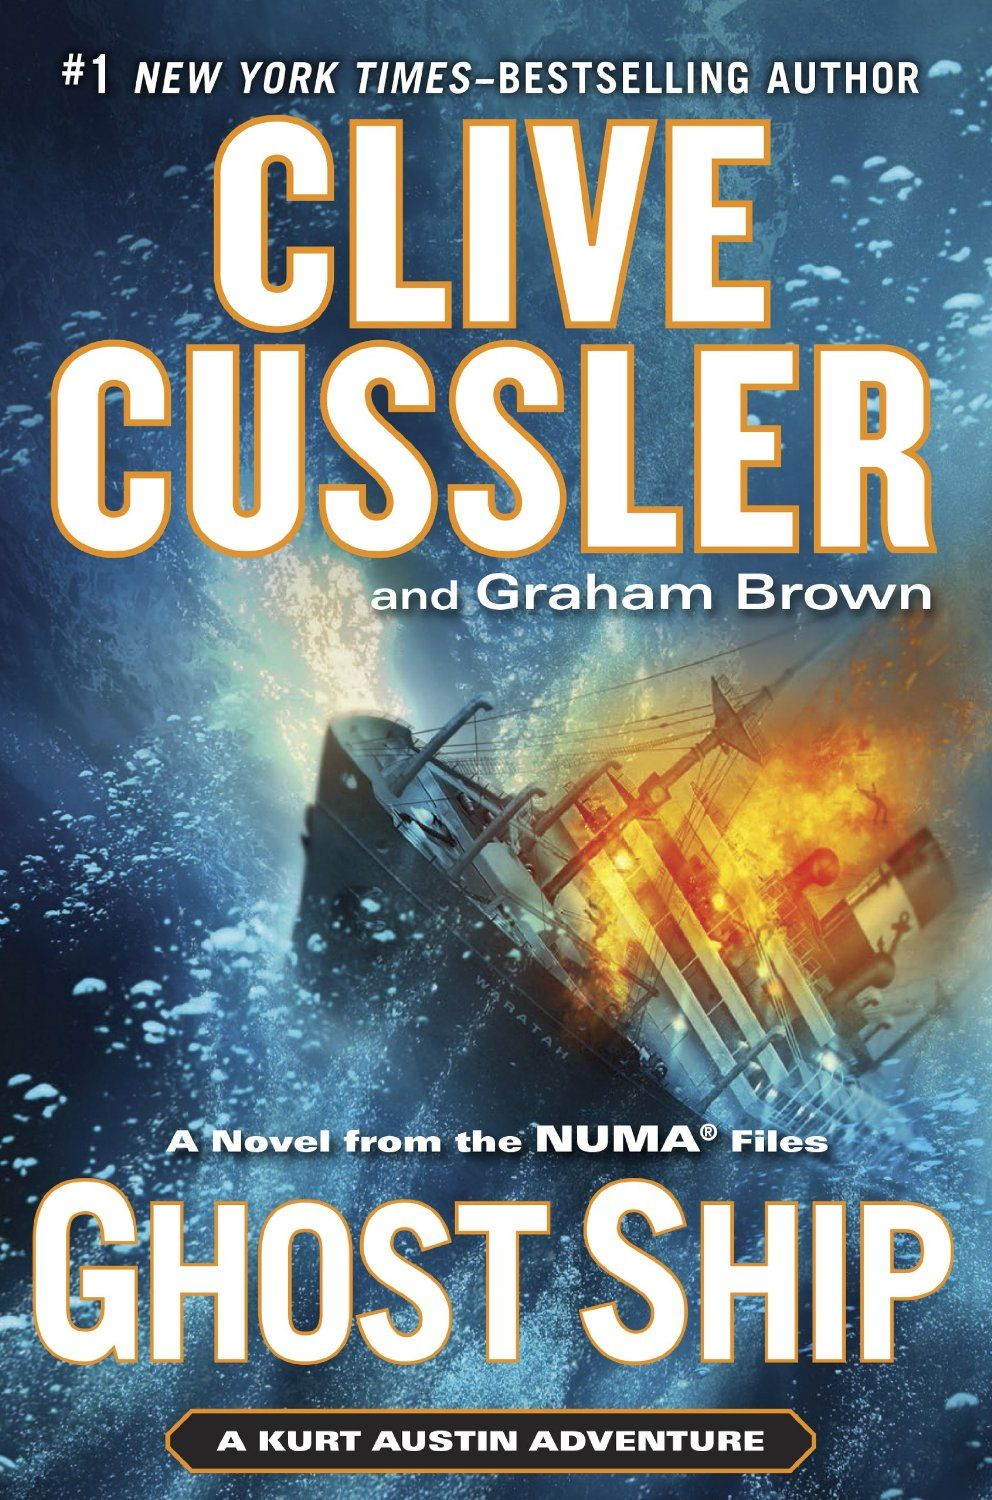 Clive Cussler Dragon Ebook